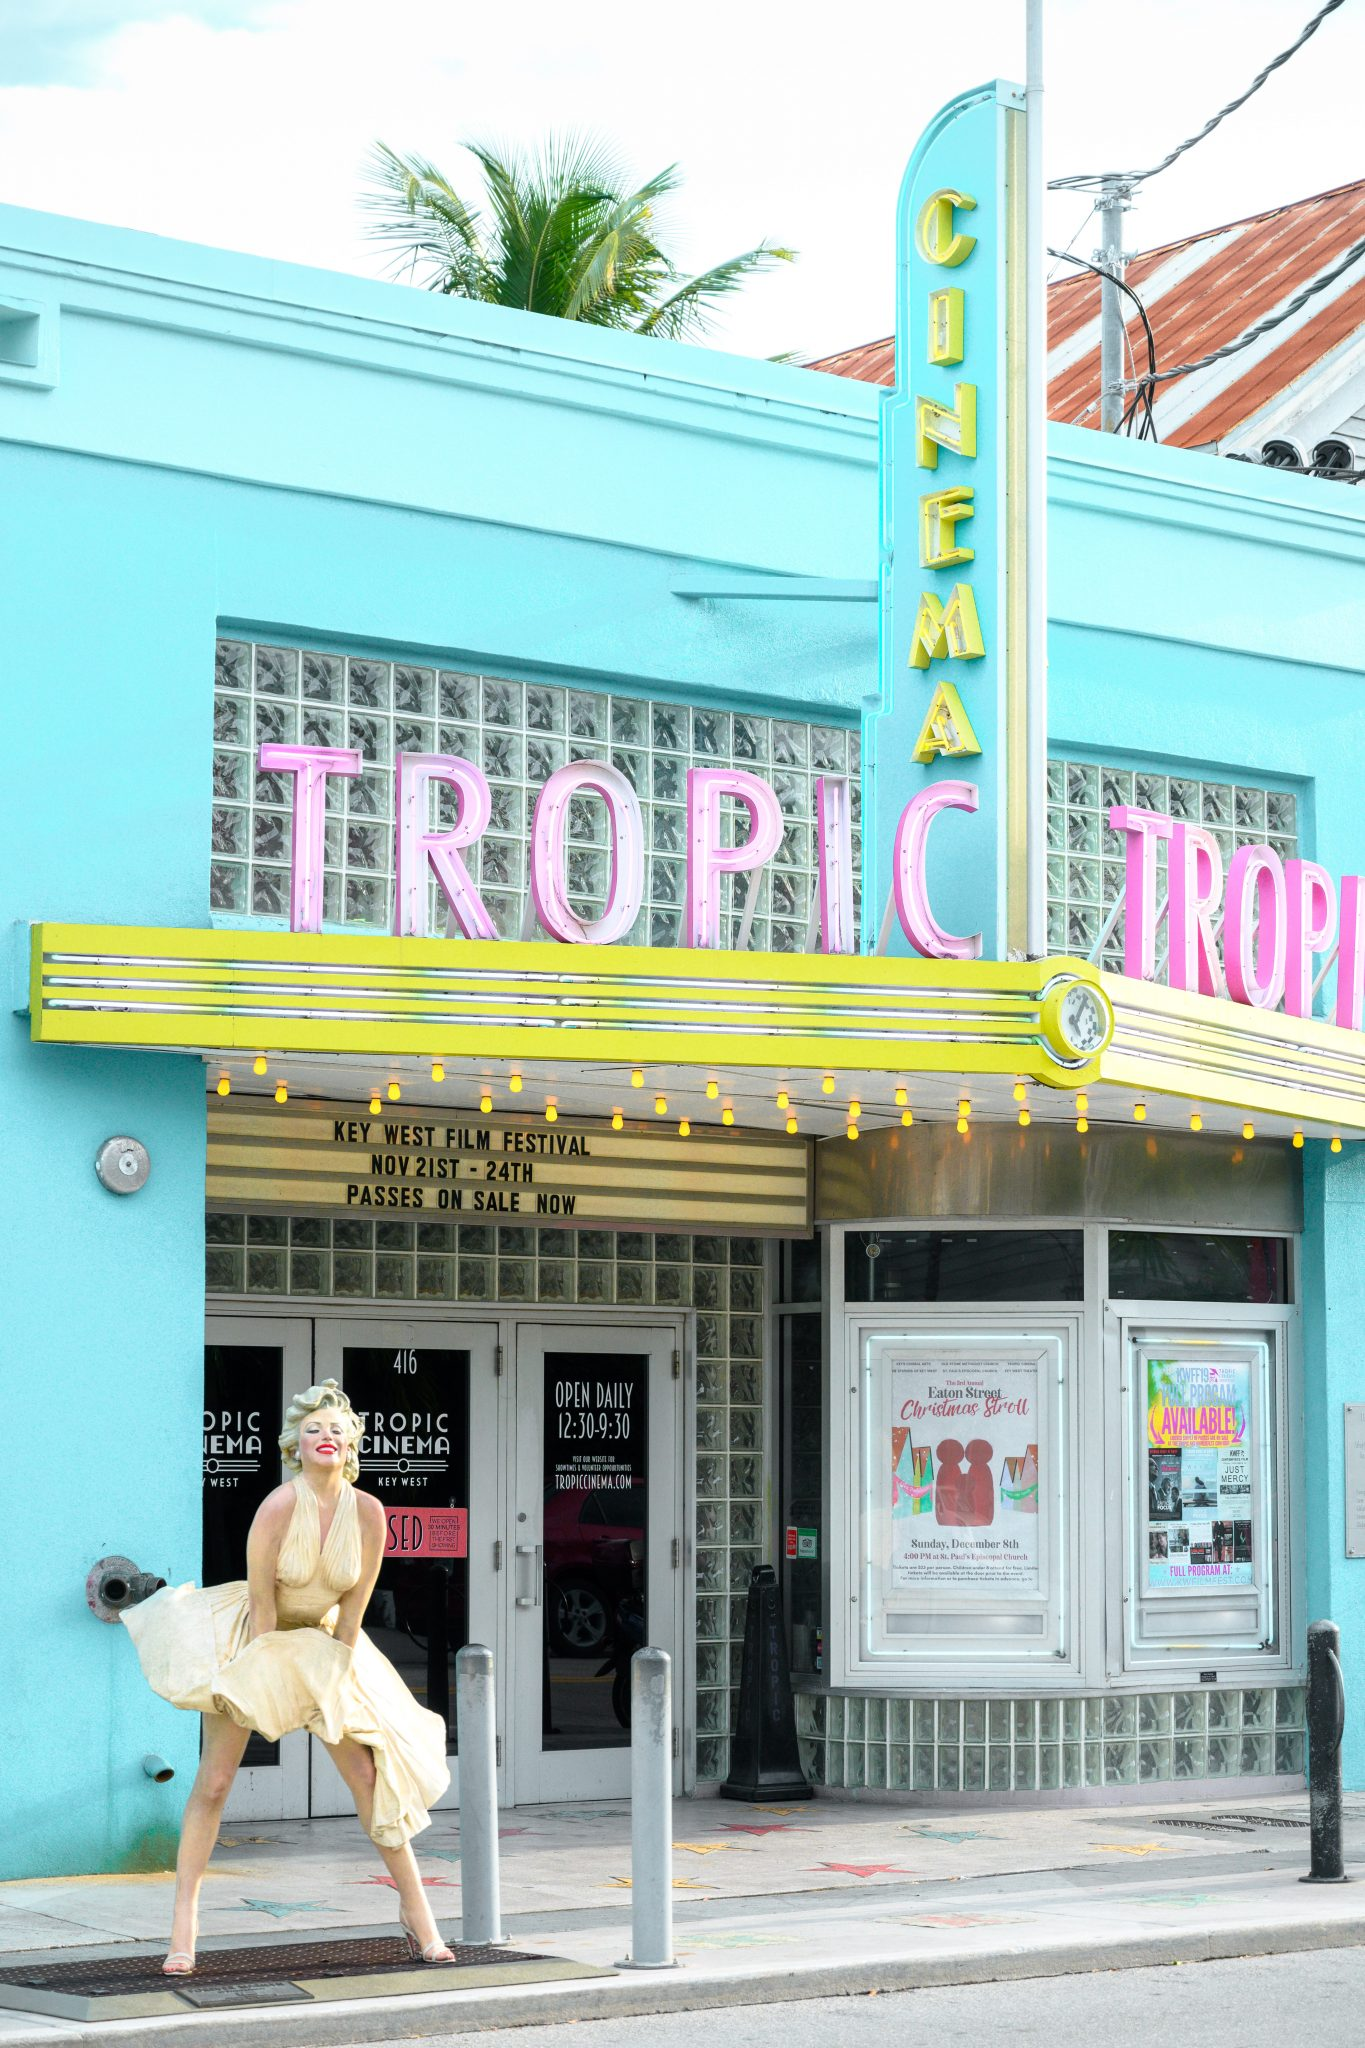 tropic cinema road trip floride